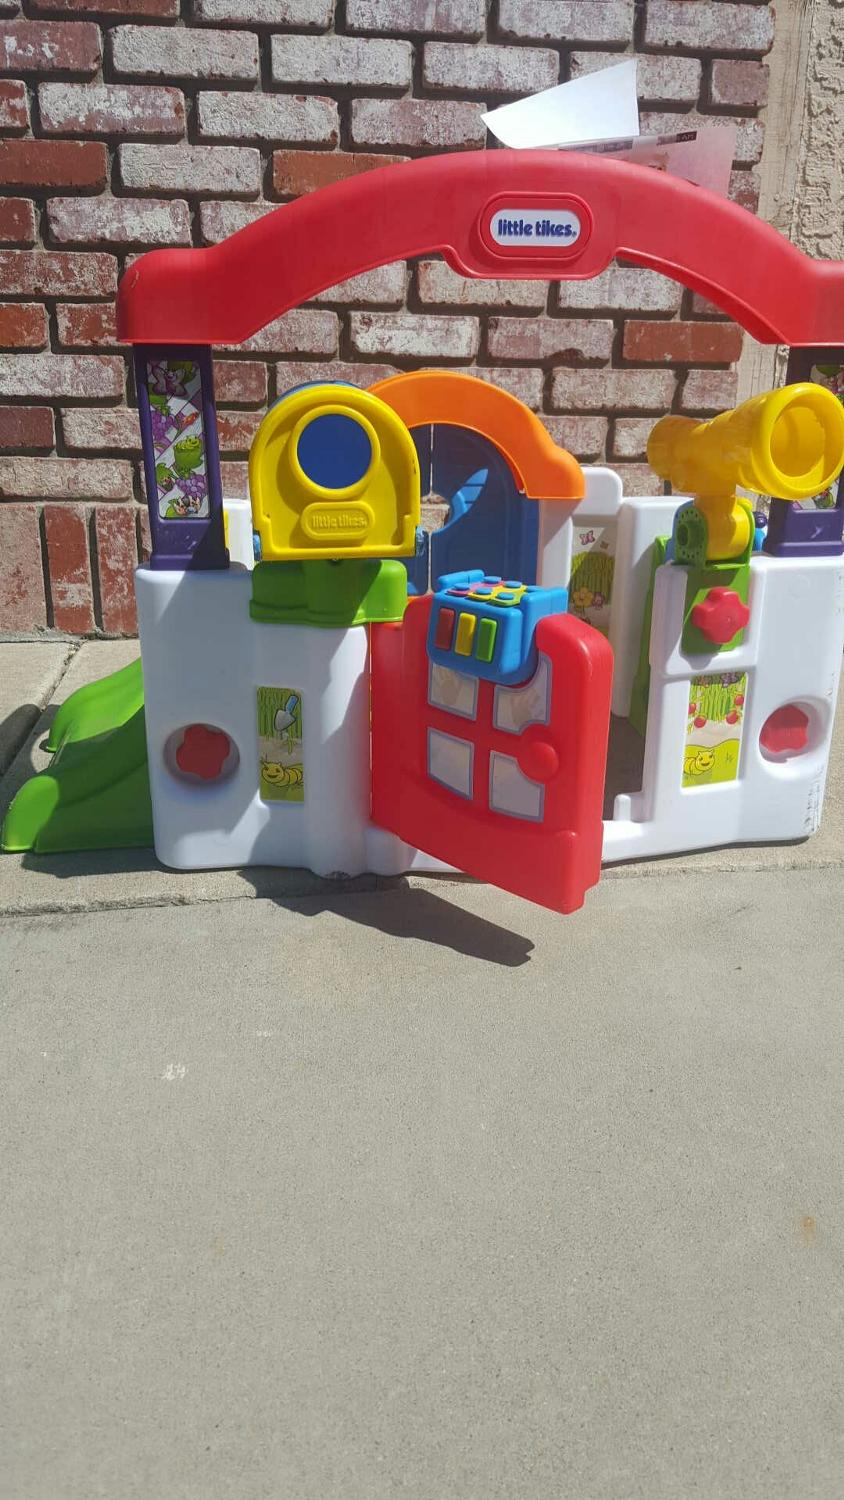 Find More Little Tikes Activity Garden For Sale At Up To 90 Off